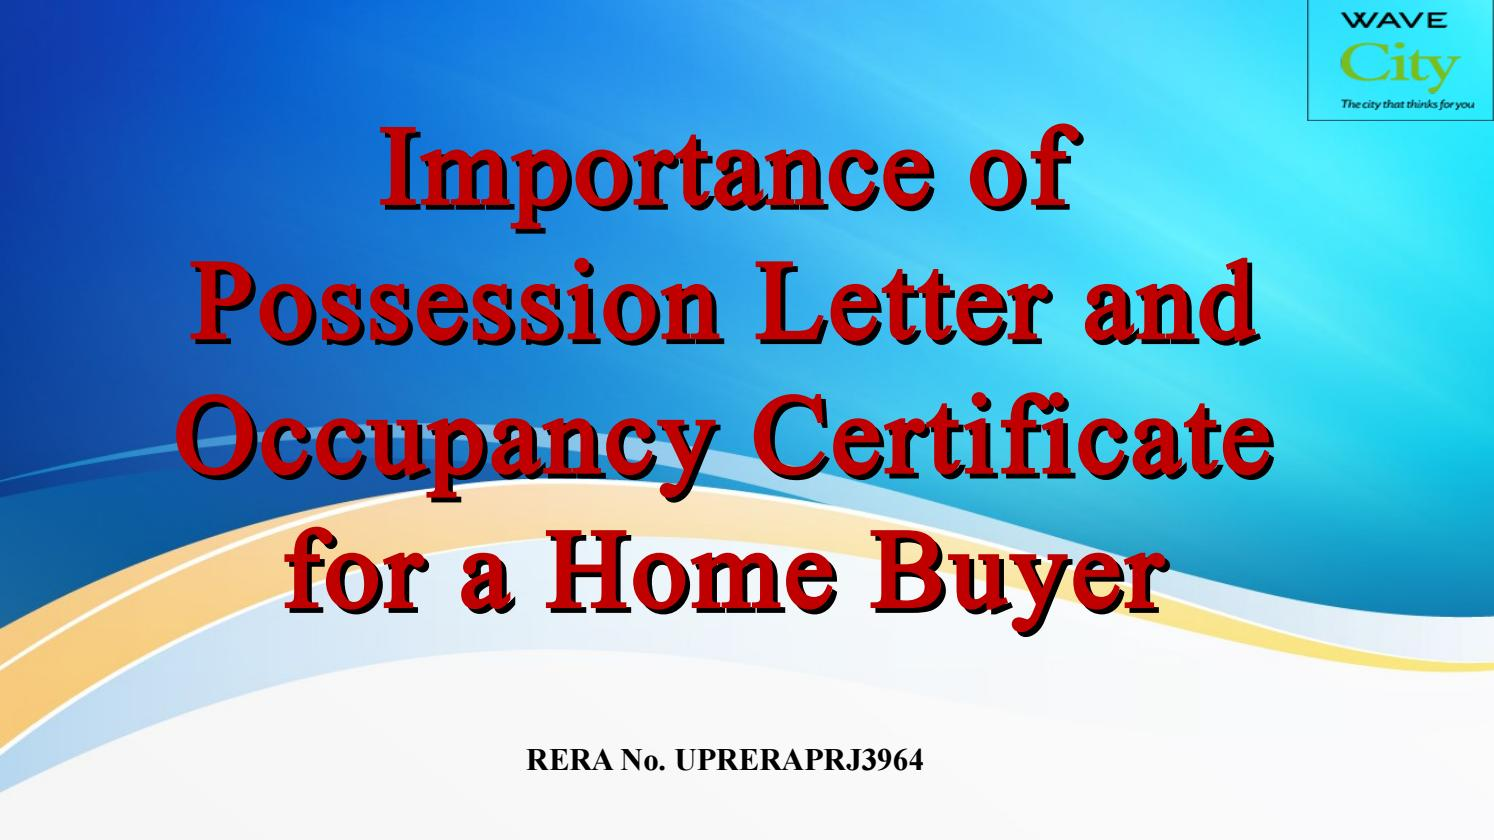 Importance Of Possession Letter And Occupancy Certificate For A Home